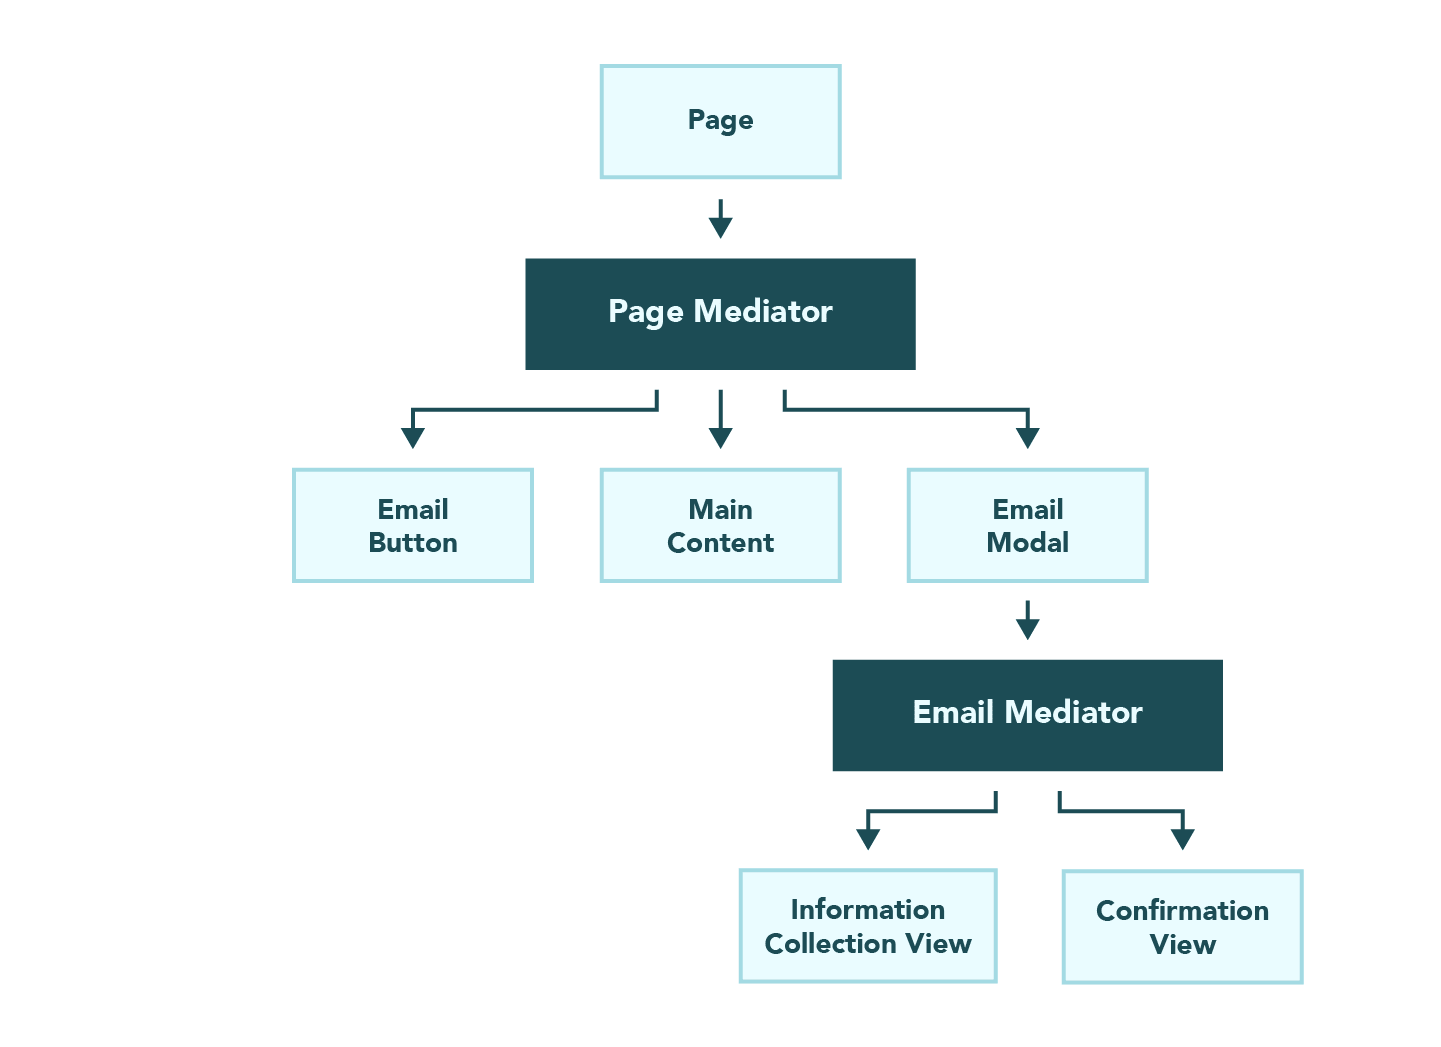 Architectural diagram of the mediator pattern